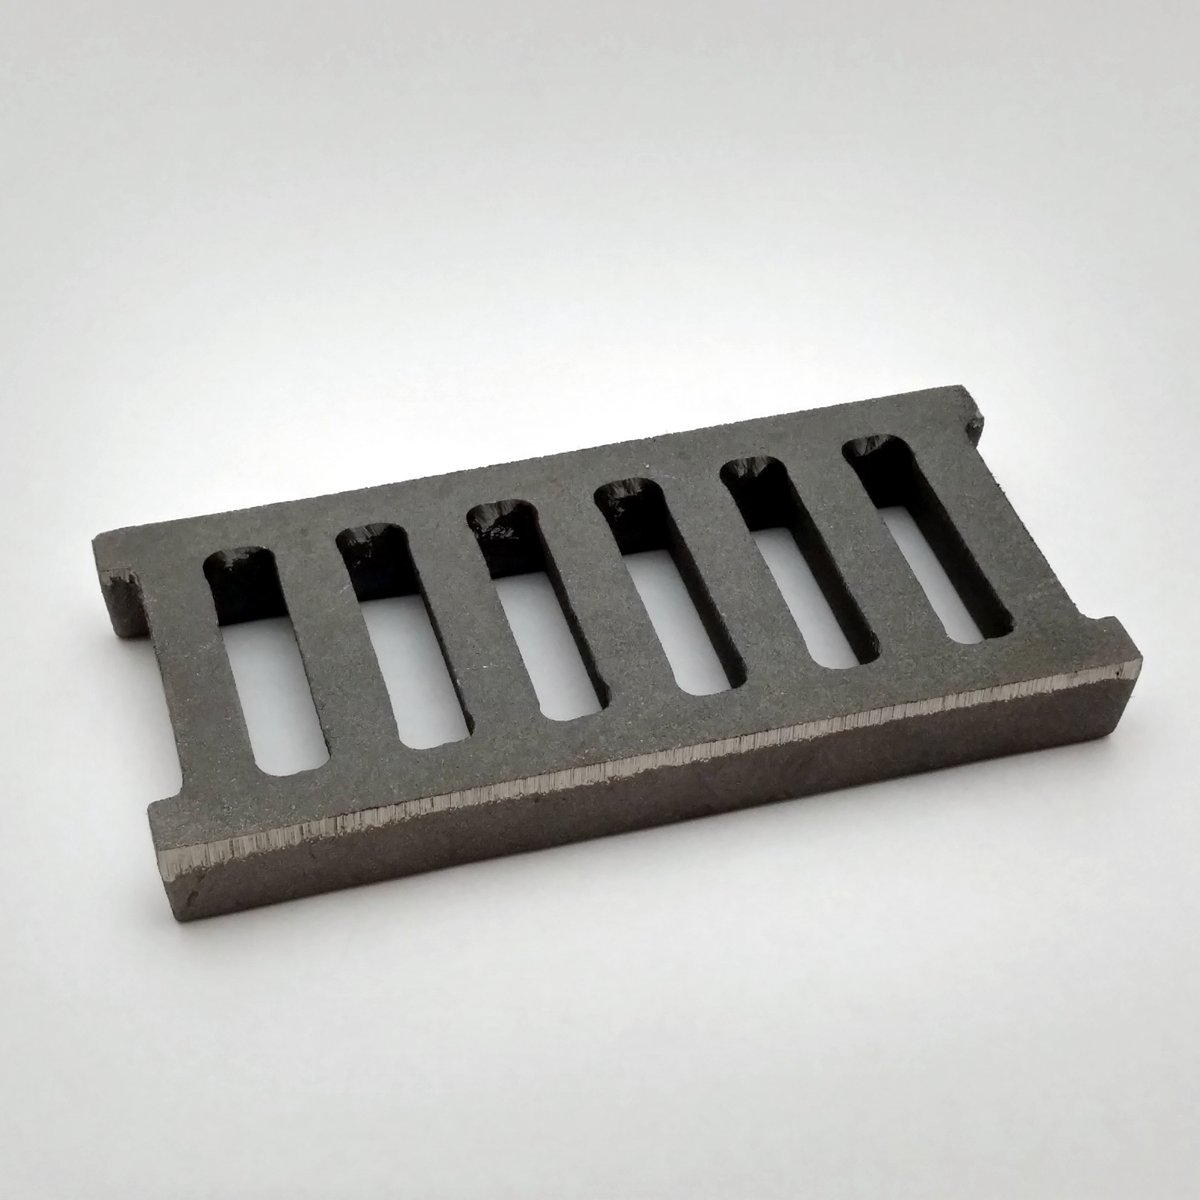 Kuma replacement ash grate